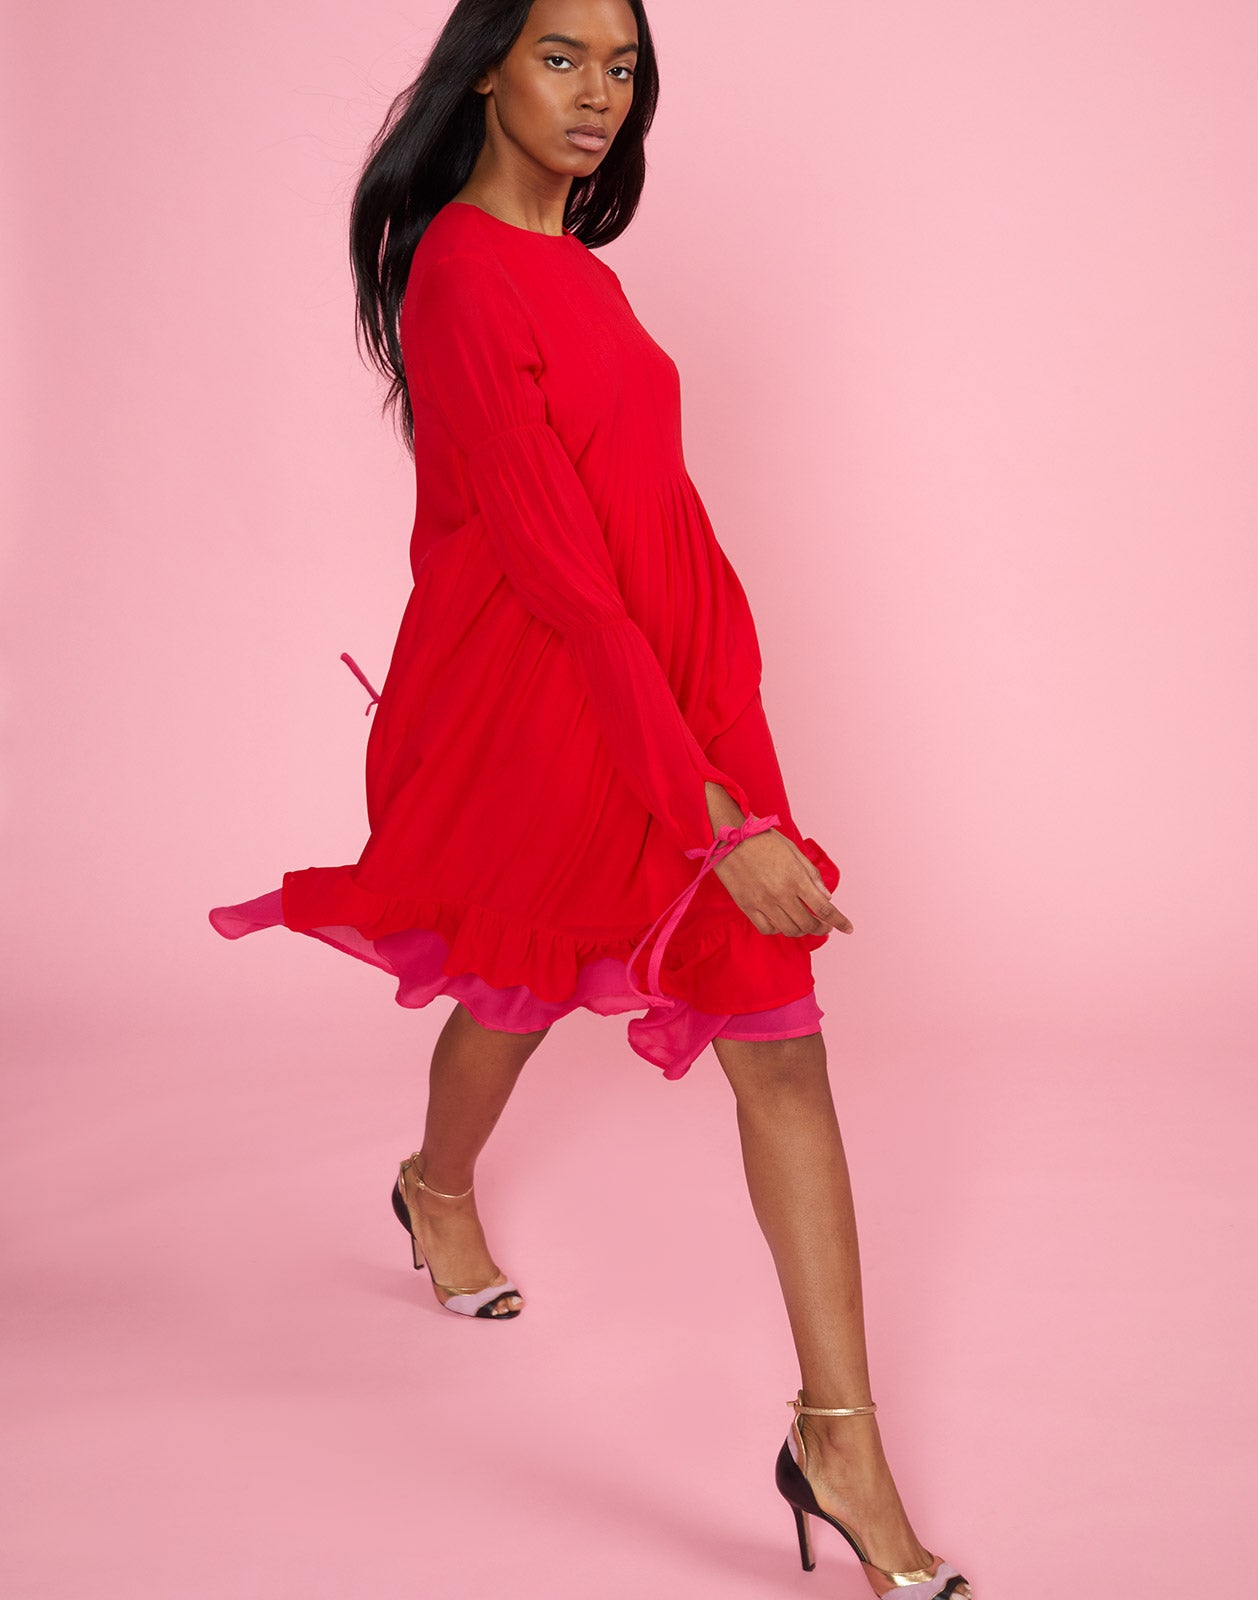 Full side view of model walking wearing Isla Pinktuck Dress in cherry red.